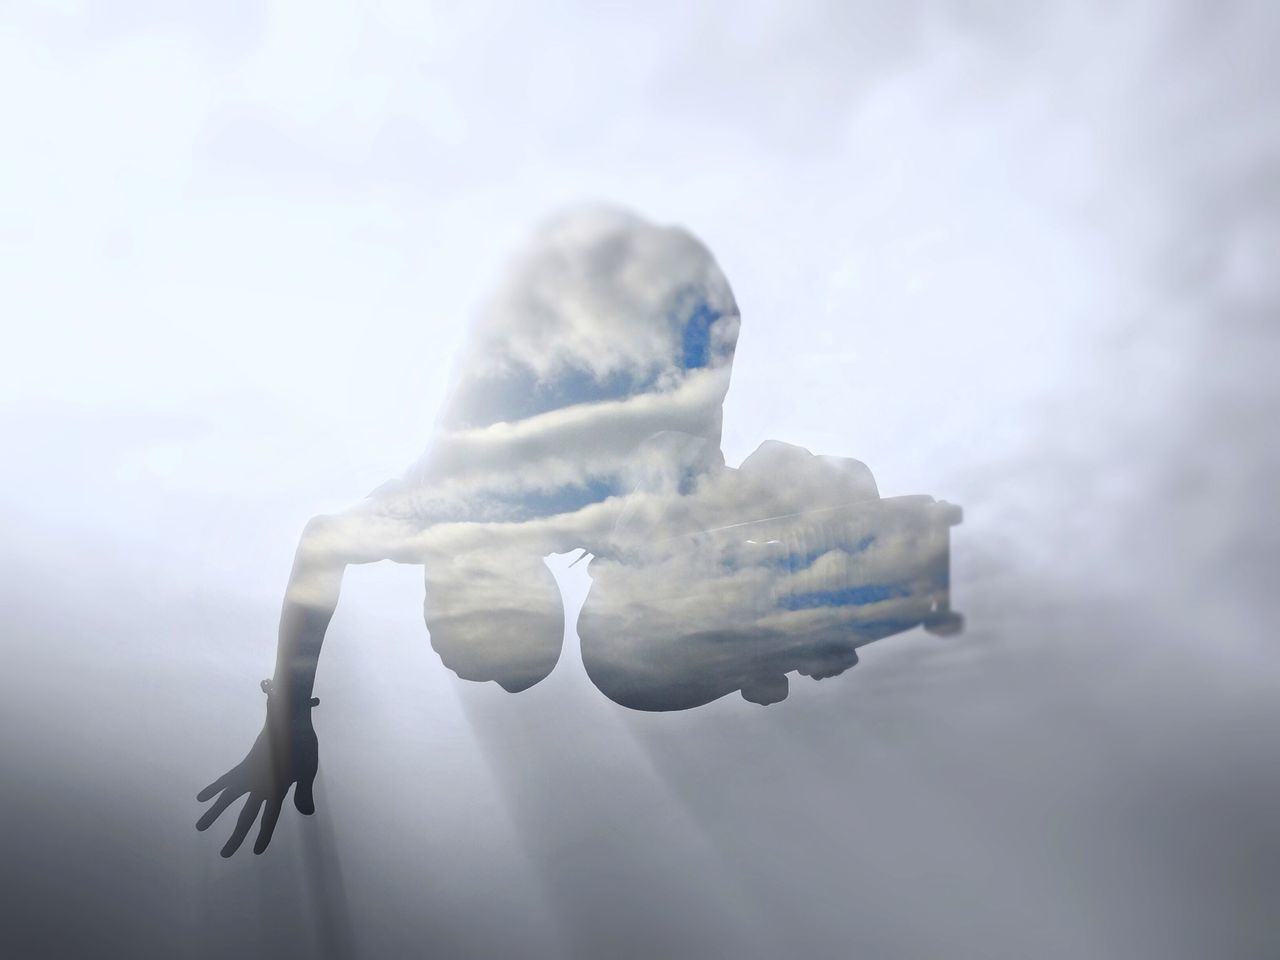 Double exposure of person jumping with skate board against cloudy sky